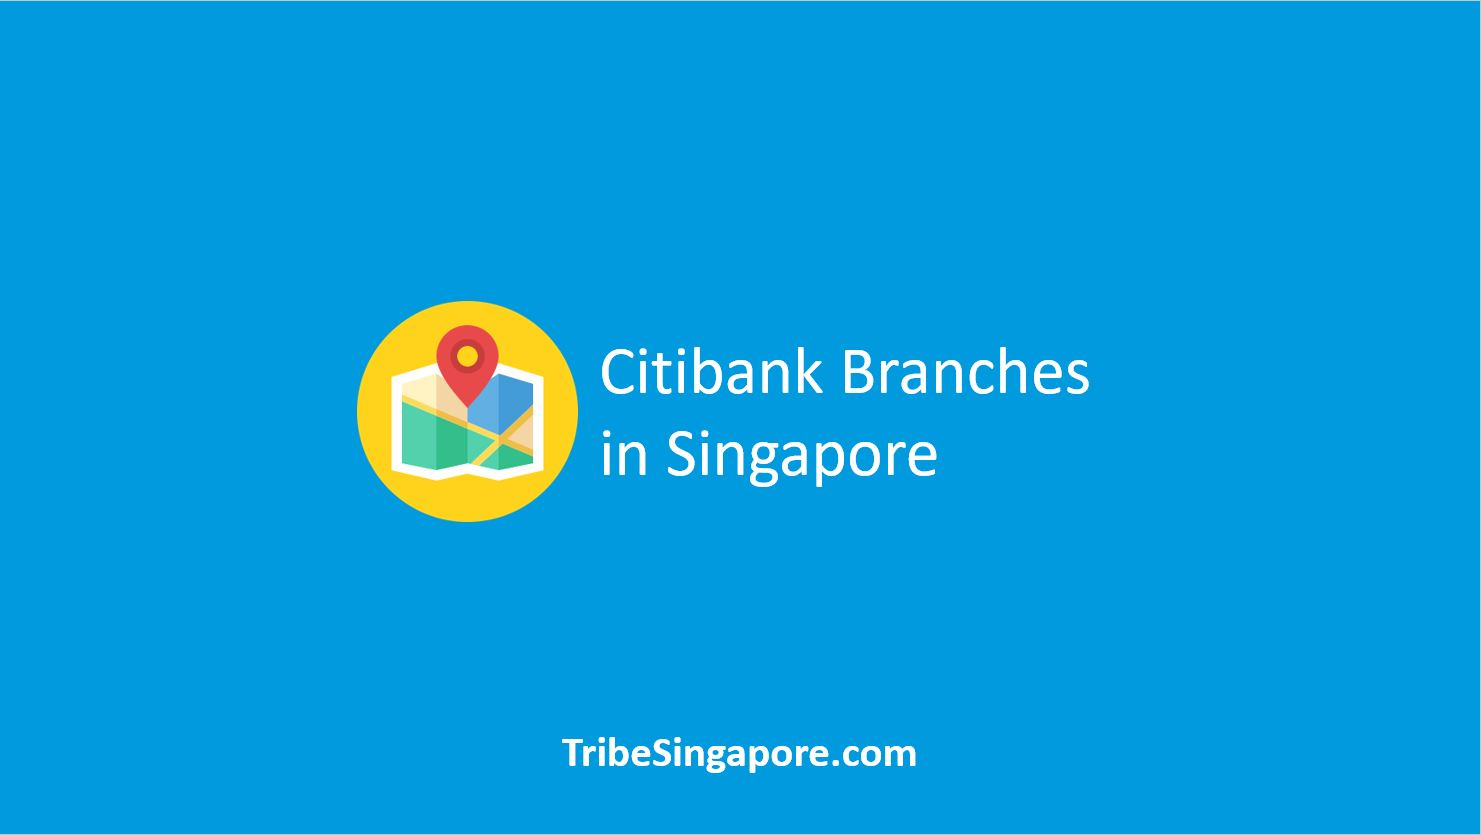 Citibank Branches in Singapore